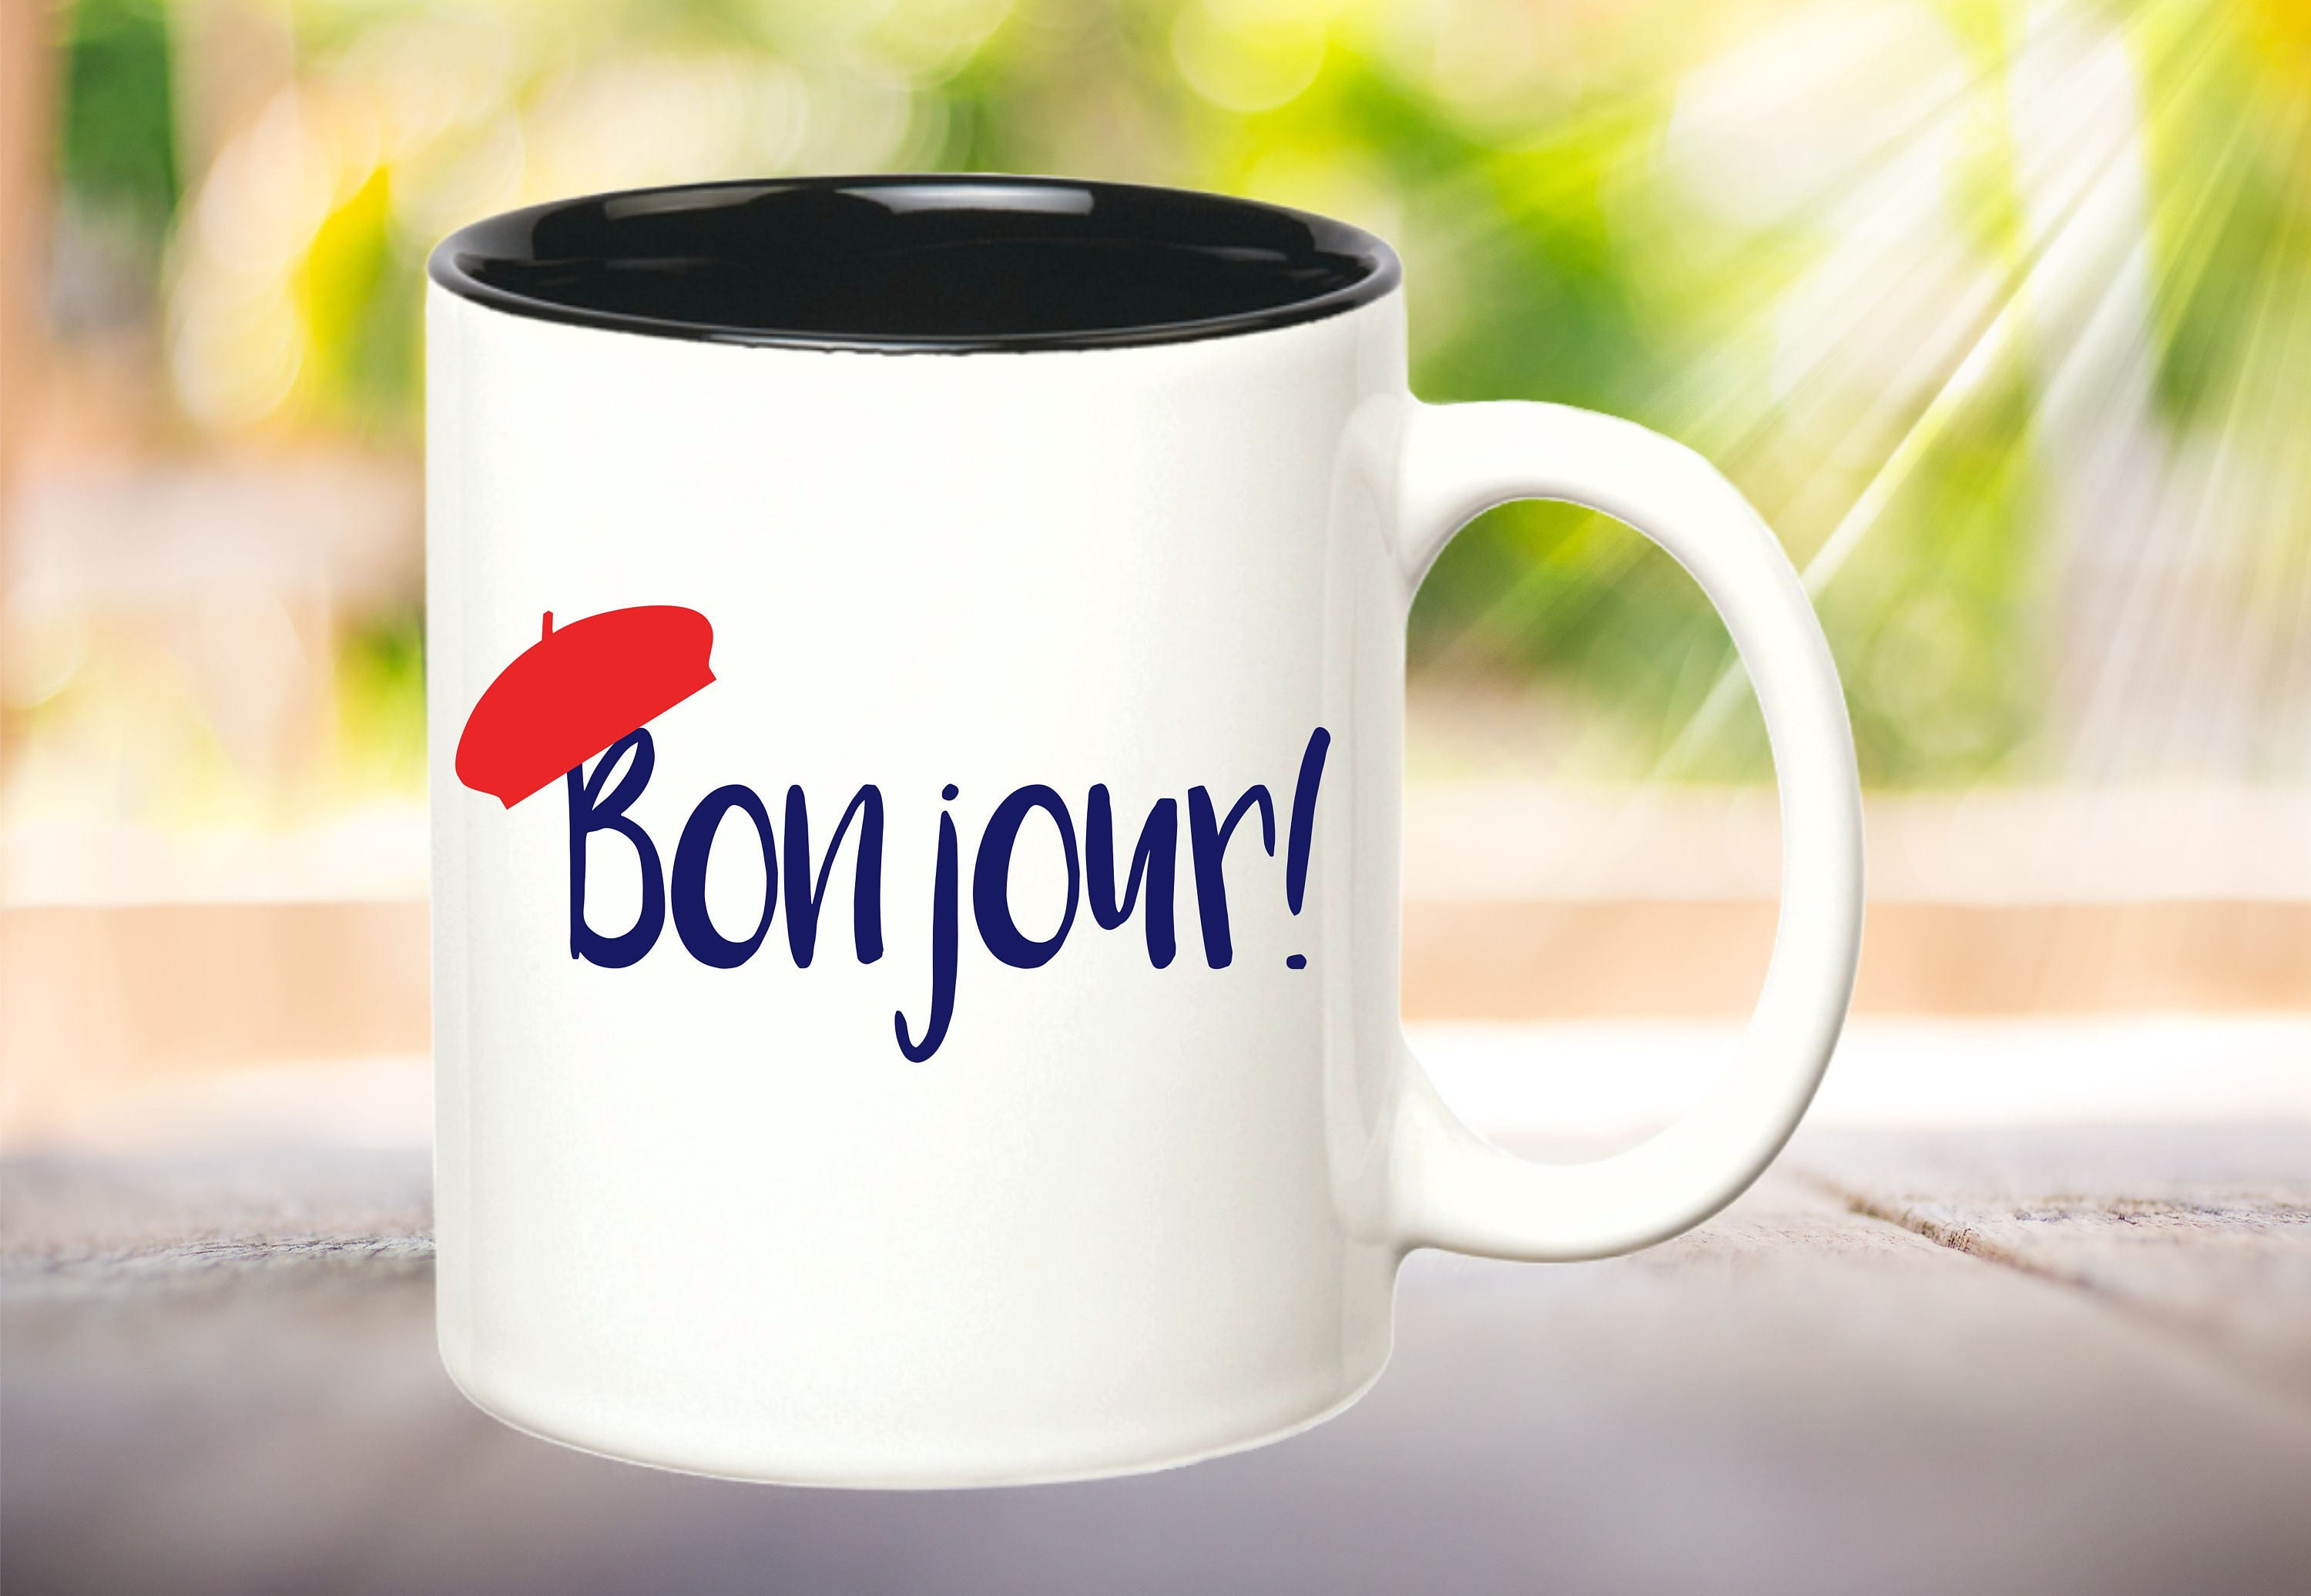 French Coffee Bonjour Mug Lcuf1tj3k Inetsy Gifts Hello XNn0PkwO8